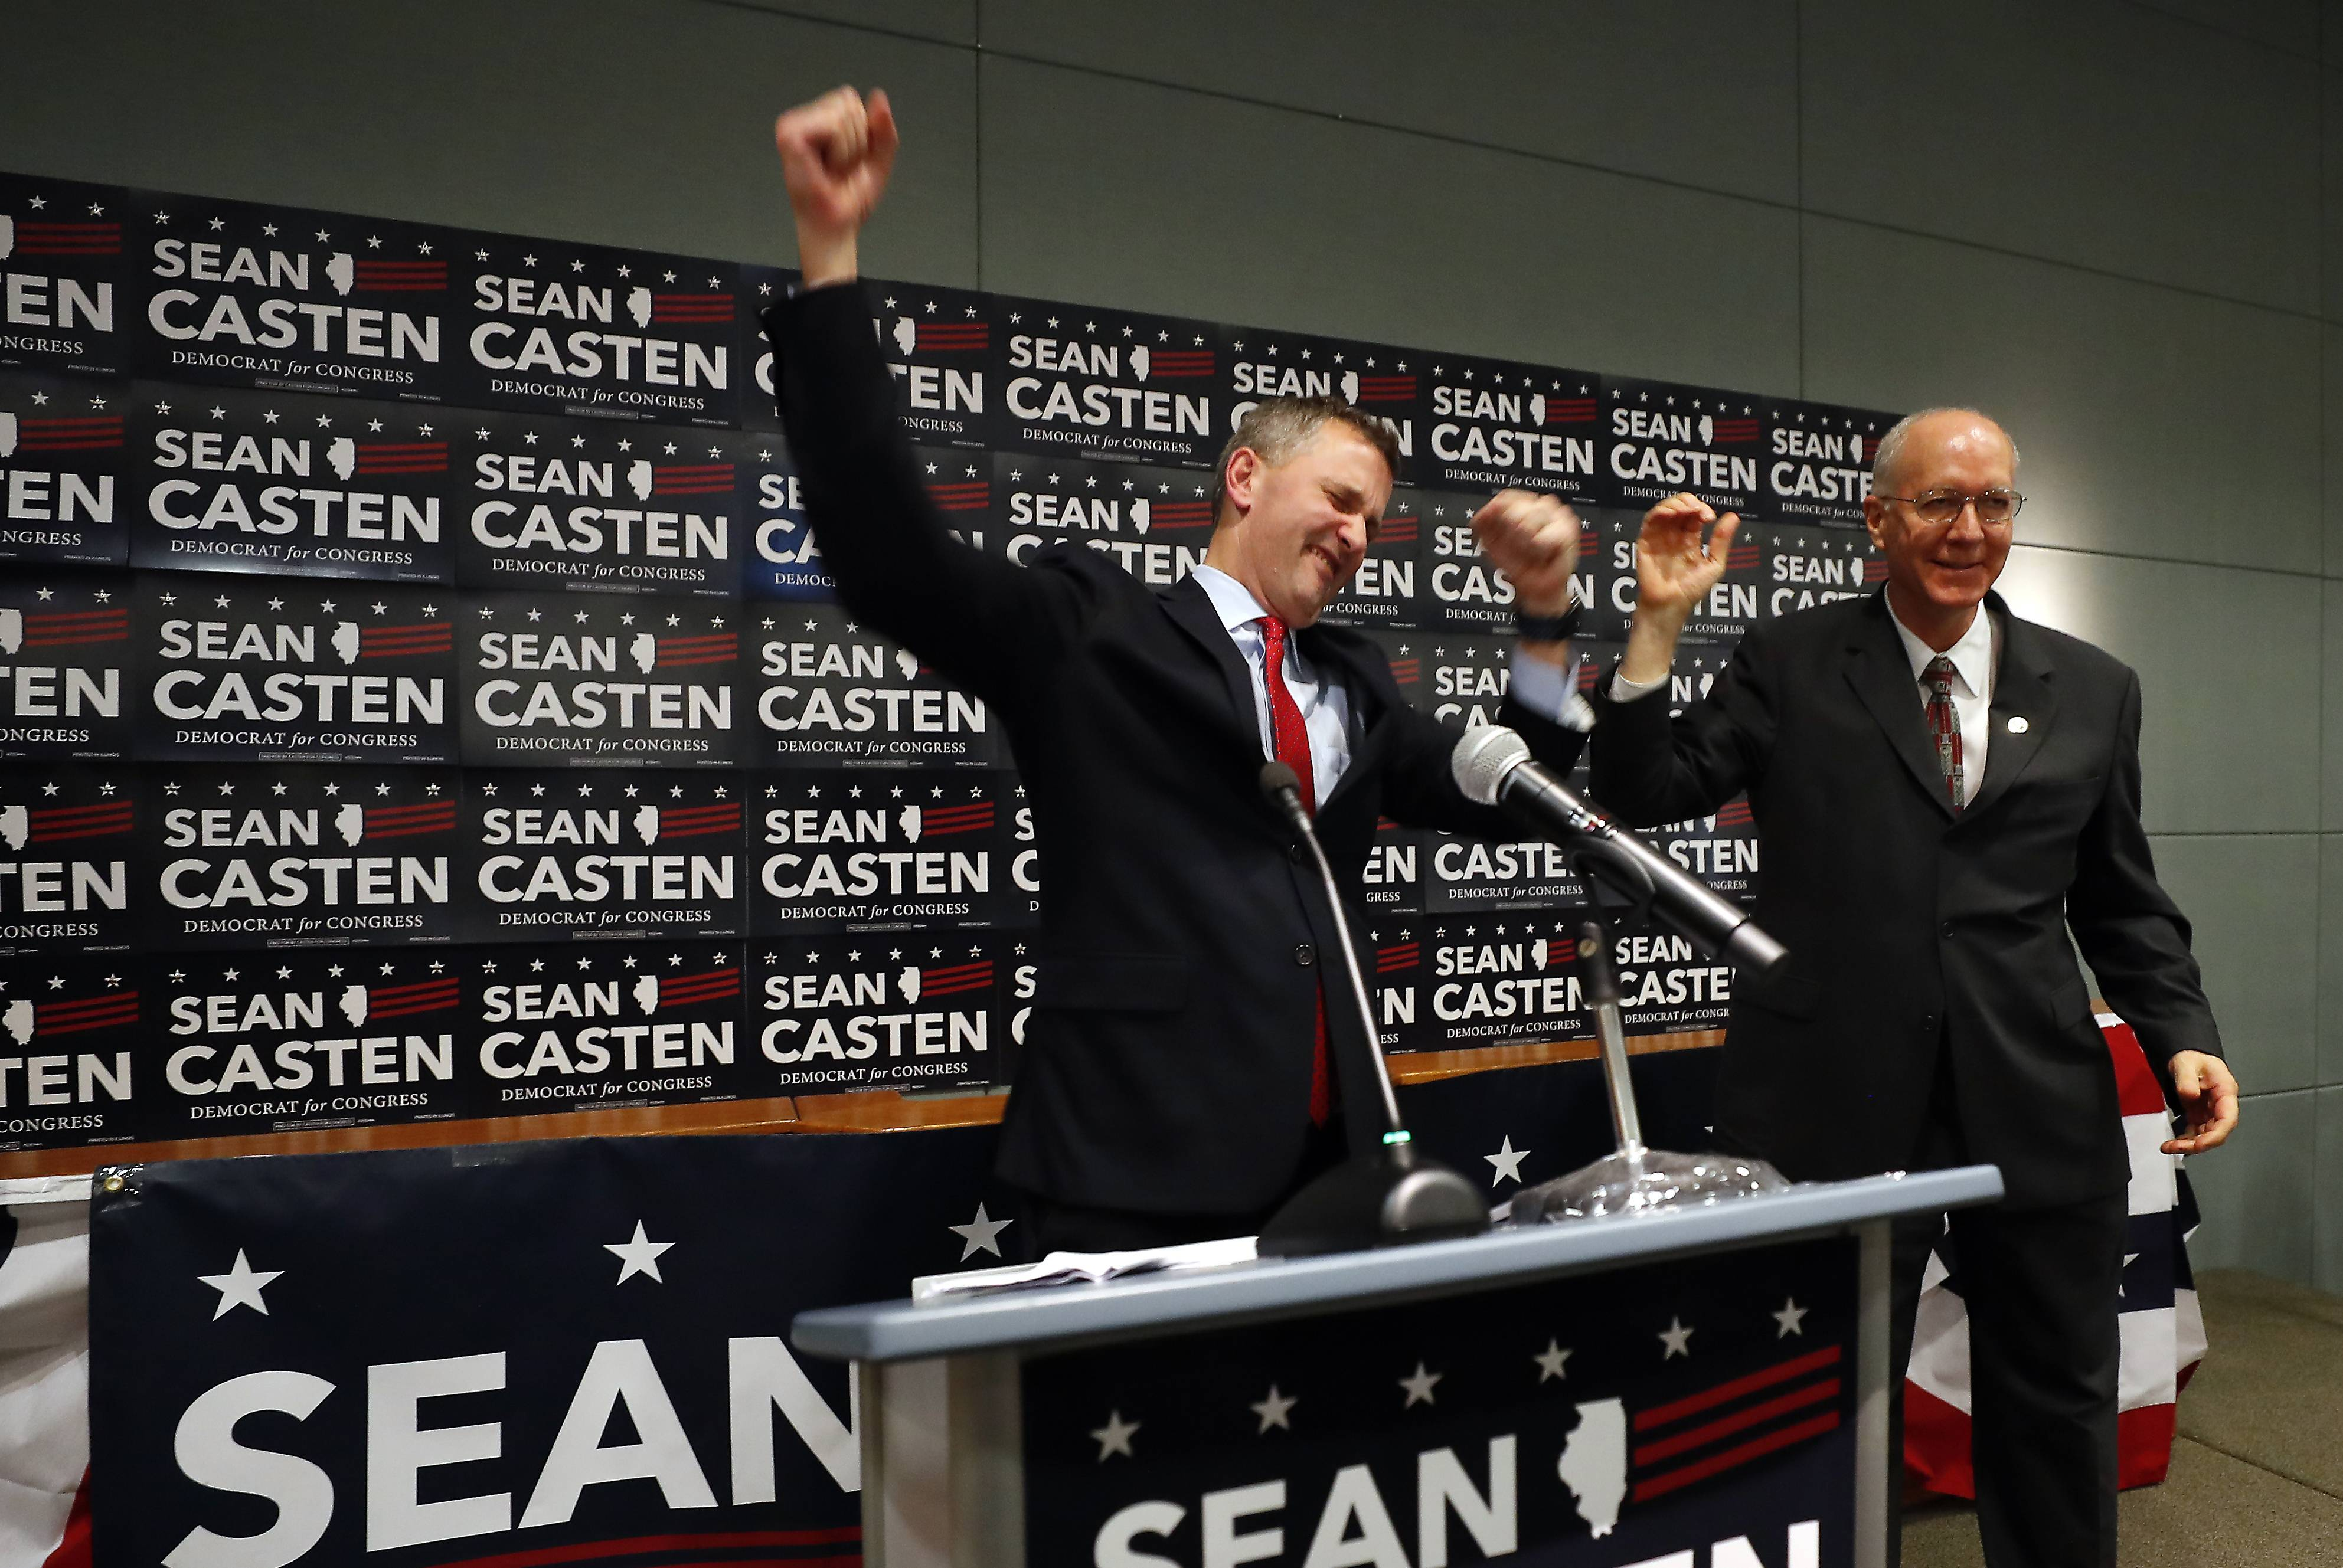 Democrat Sean Casten celebrates with 11th District U.S. Rep. Bill Foster Tuesday after the political newcomer unseated longtime Republican incumbent Peter Roskam to win the 6th District seat in Congress.